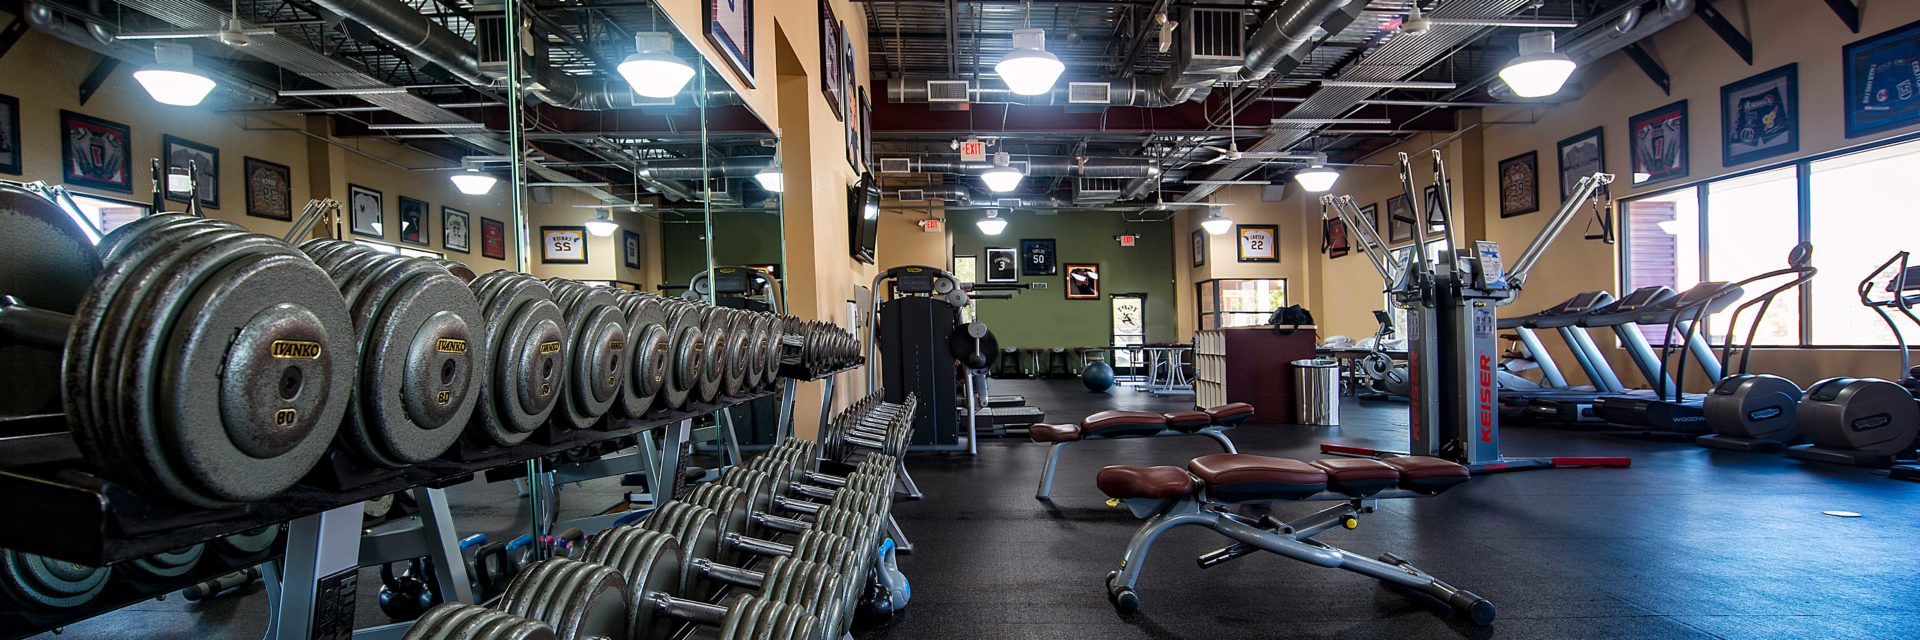 physical therapy, wellness and sports performance las vegas